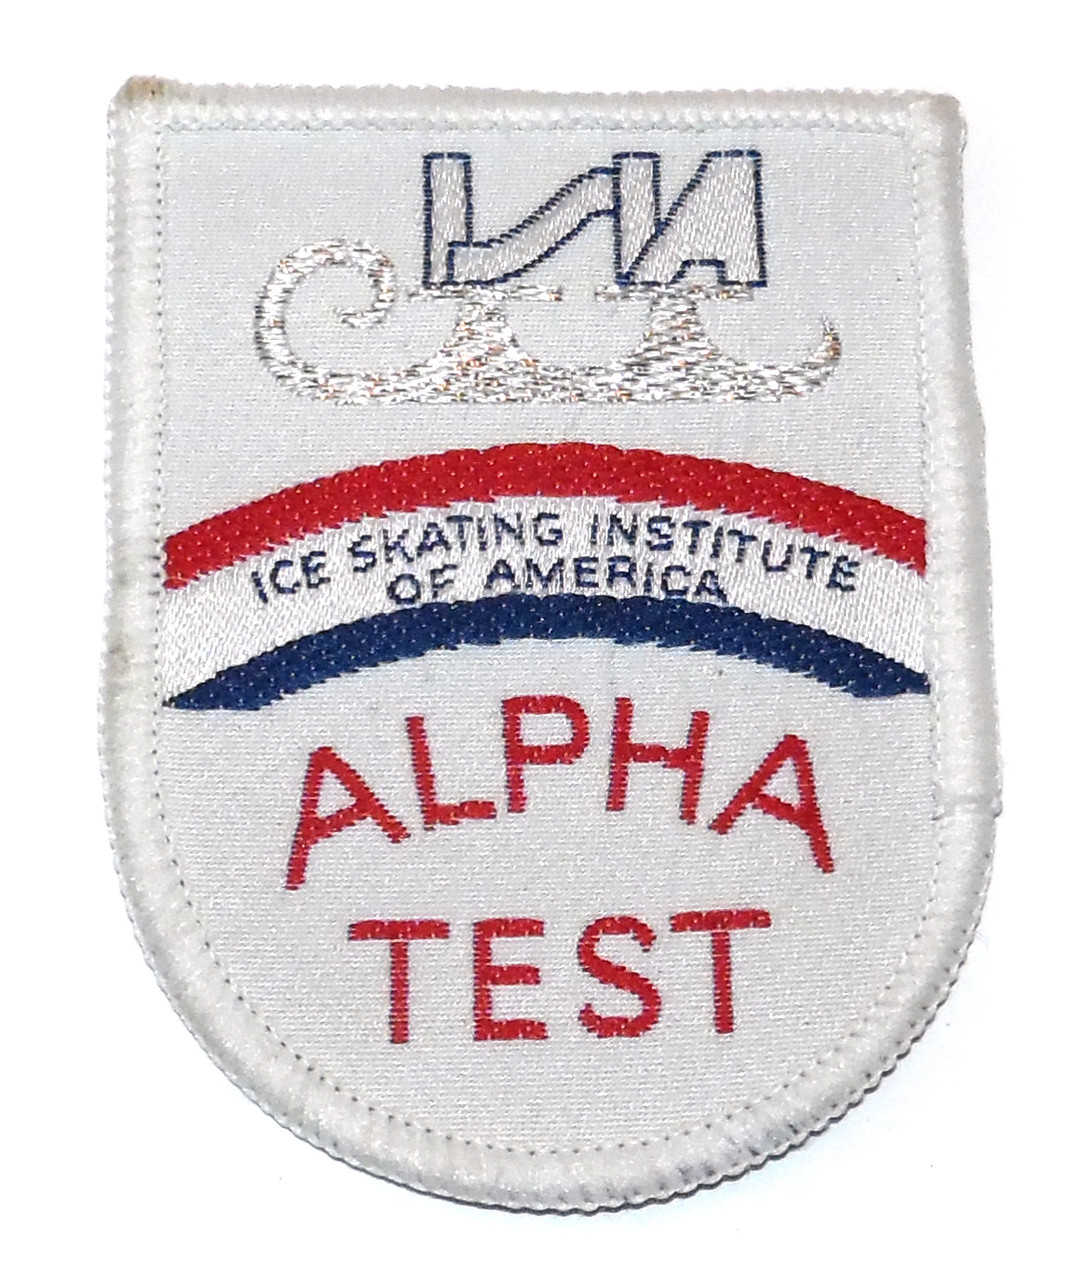 Vintage ISIA Ice Skating Institute of America Alpha Test Embroidered Cloth  Patch